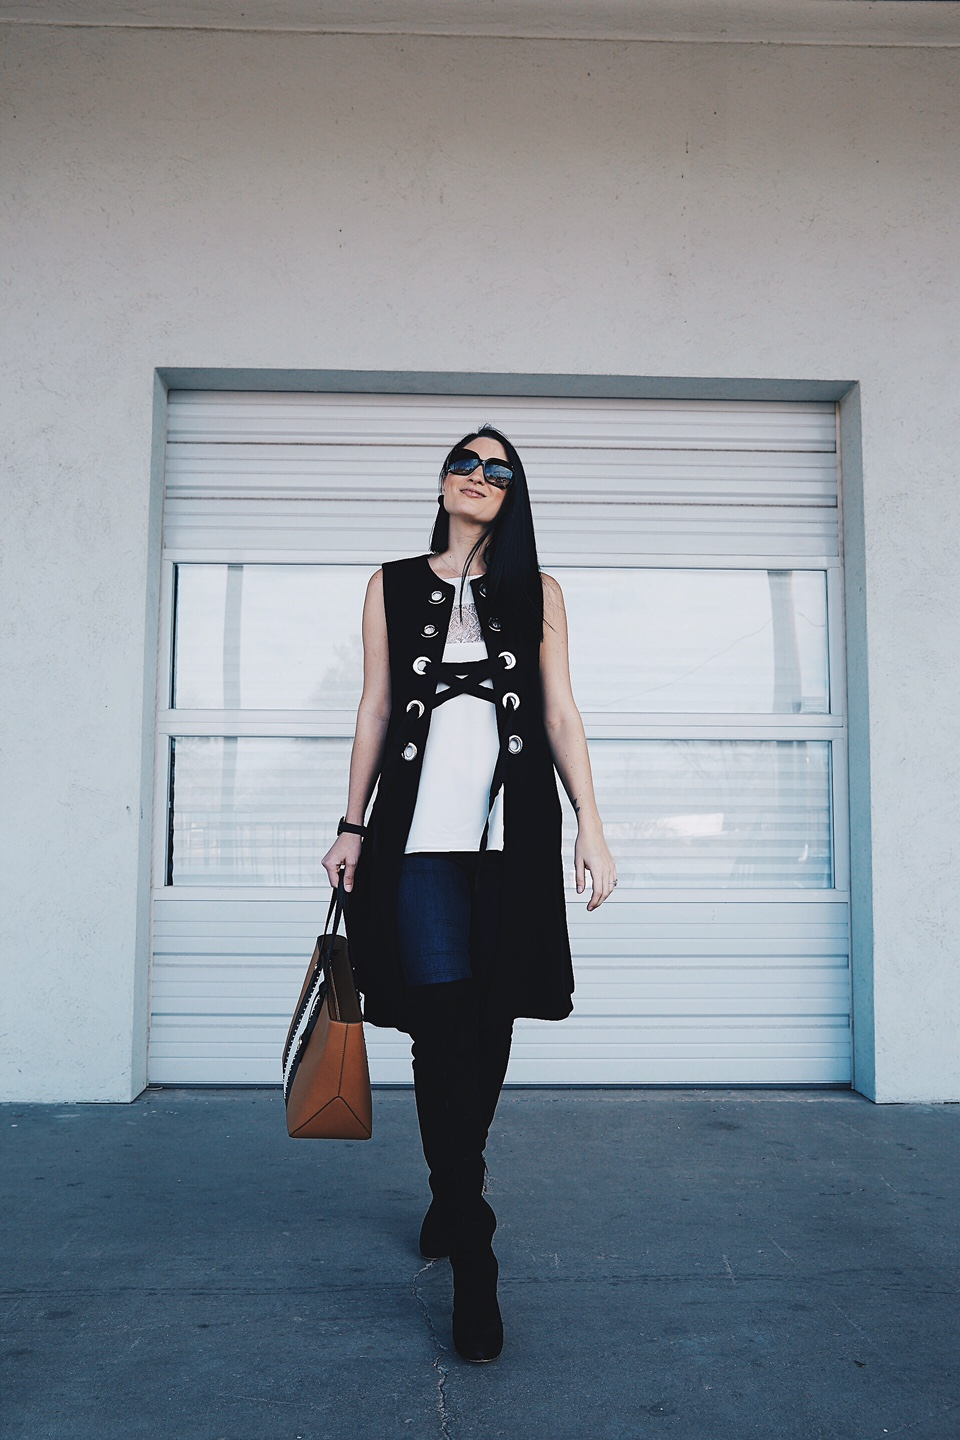 DTKAustin shows how to wear a vest to transition into Spring. Click for more details on this OOTD. Zara Vest, Henri Bendel Bag, and a CamiNYC tank.